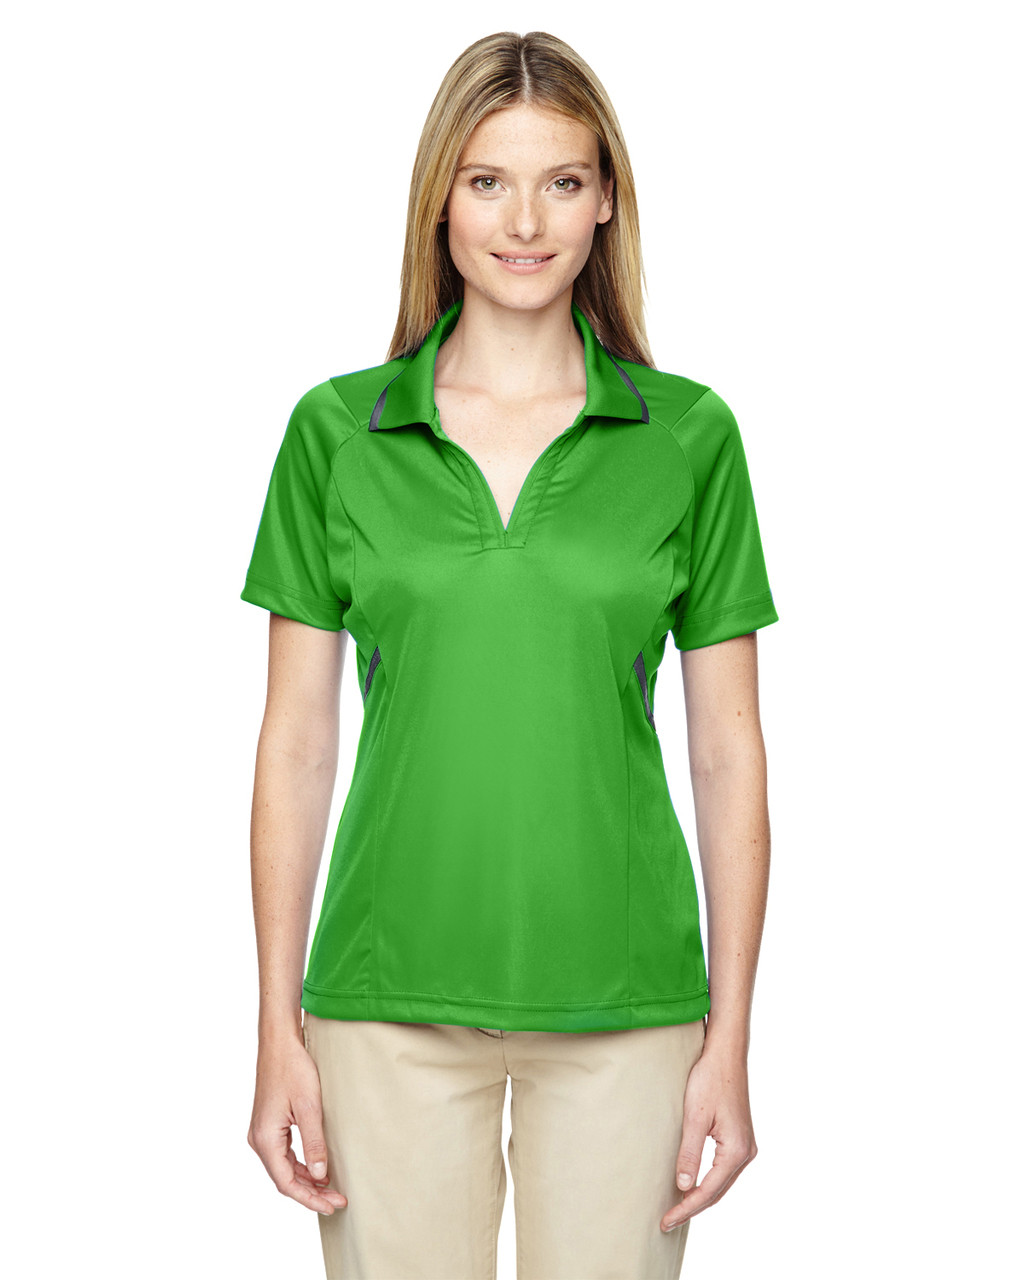 Valley Green - 75118 Ash City - 75118 Ash City - Extreme Eperformance Propel Interlock Polo Shirt with Contrast Tape   BlankClothing.ca